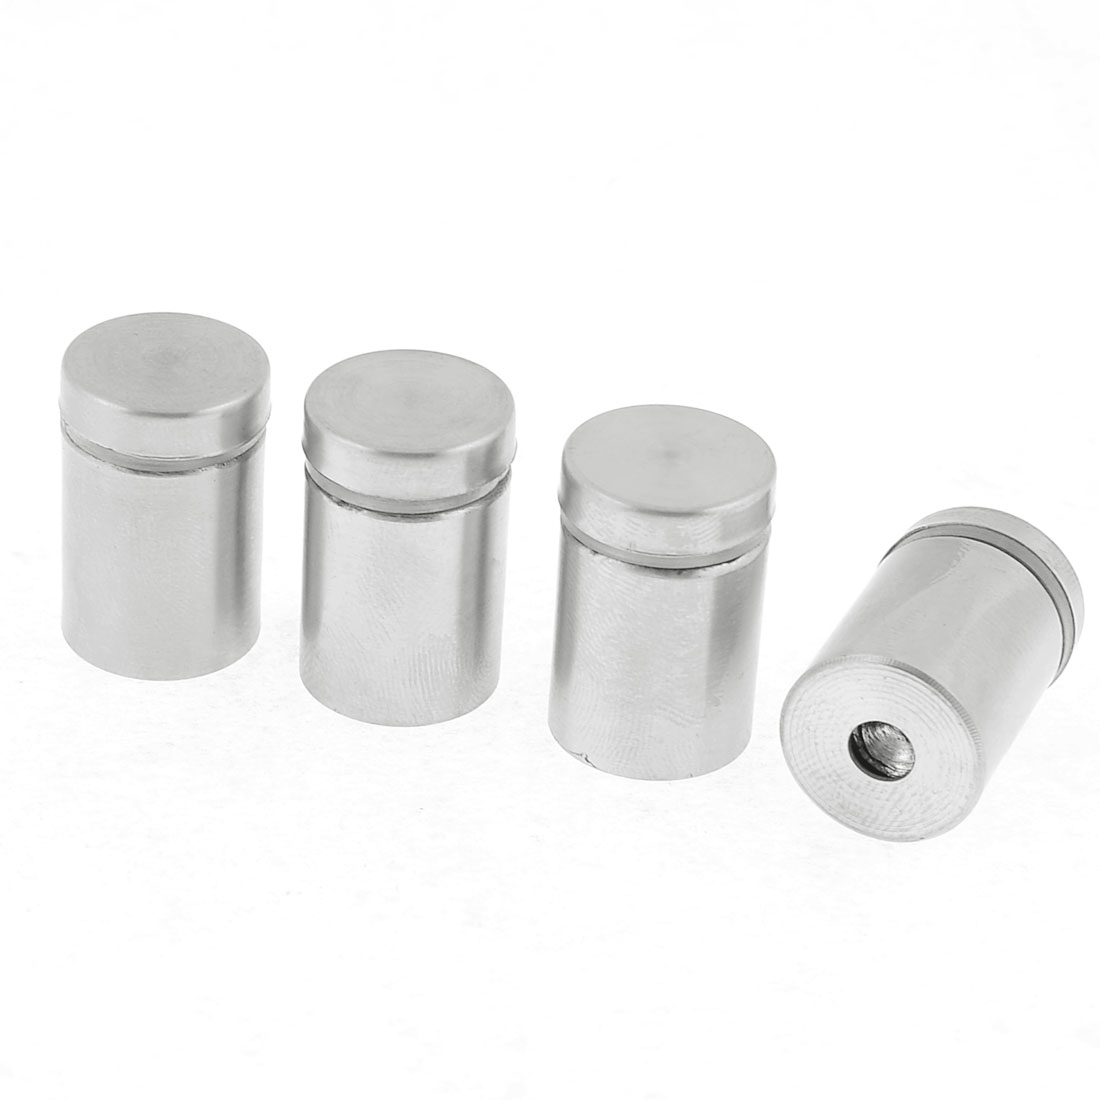 4 Pce Silver Tone Stainless Steel Mirror Nail Glass Standoff Screw Pin